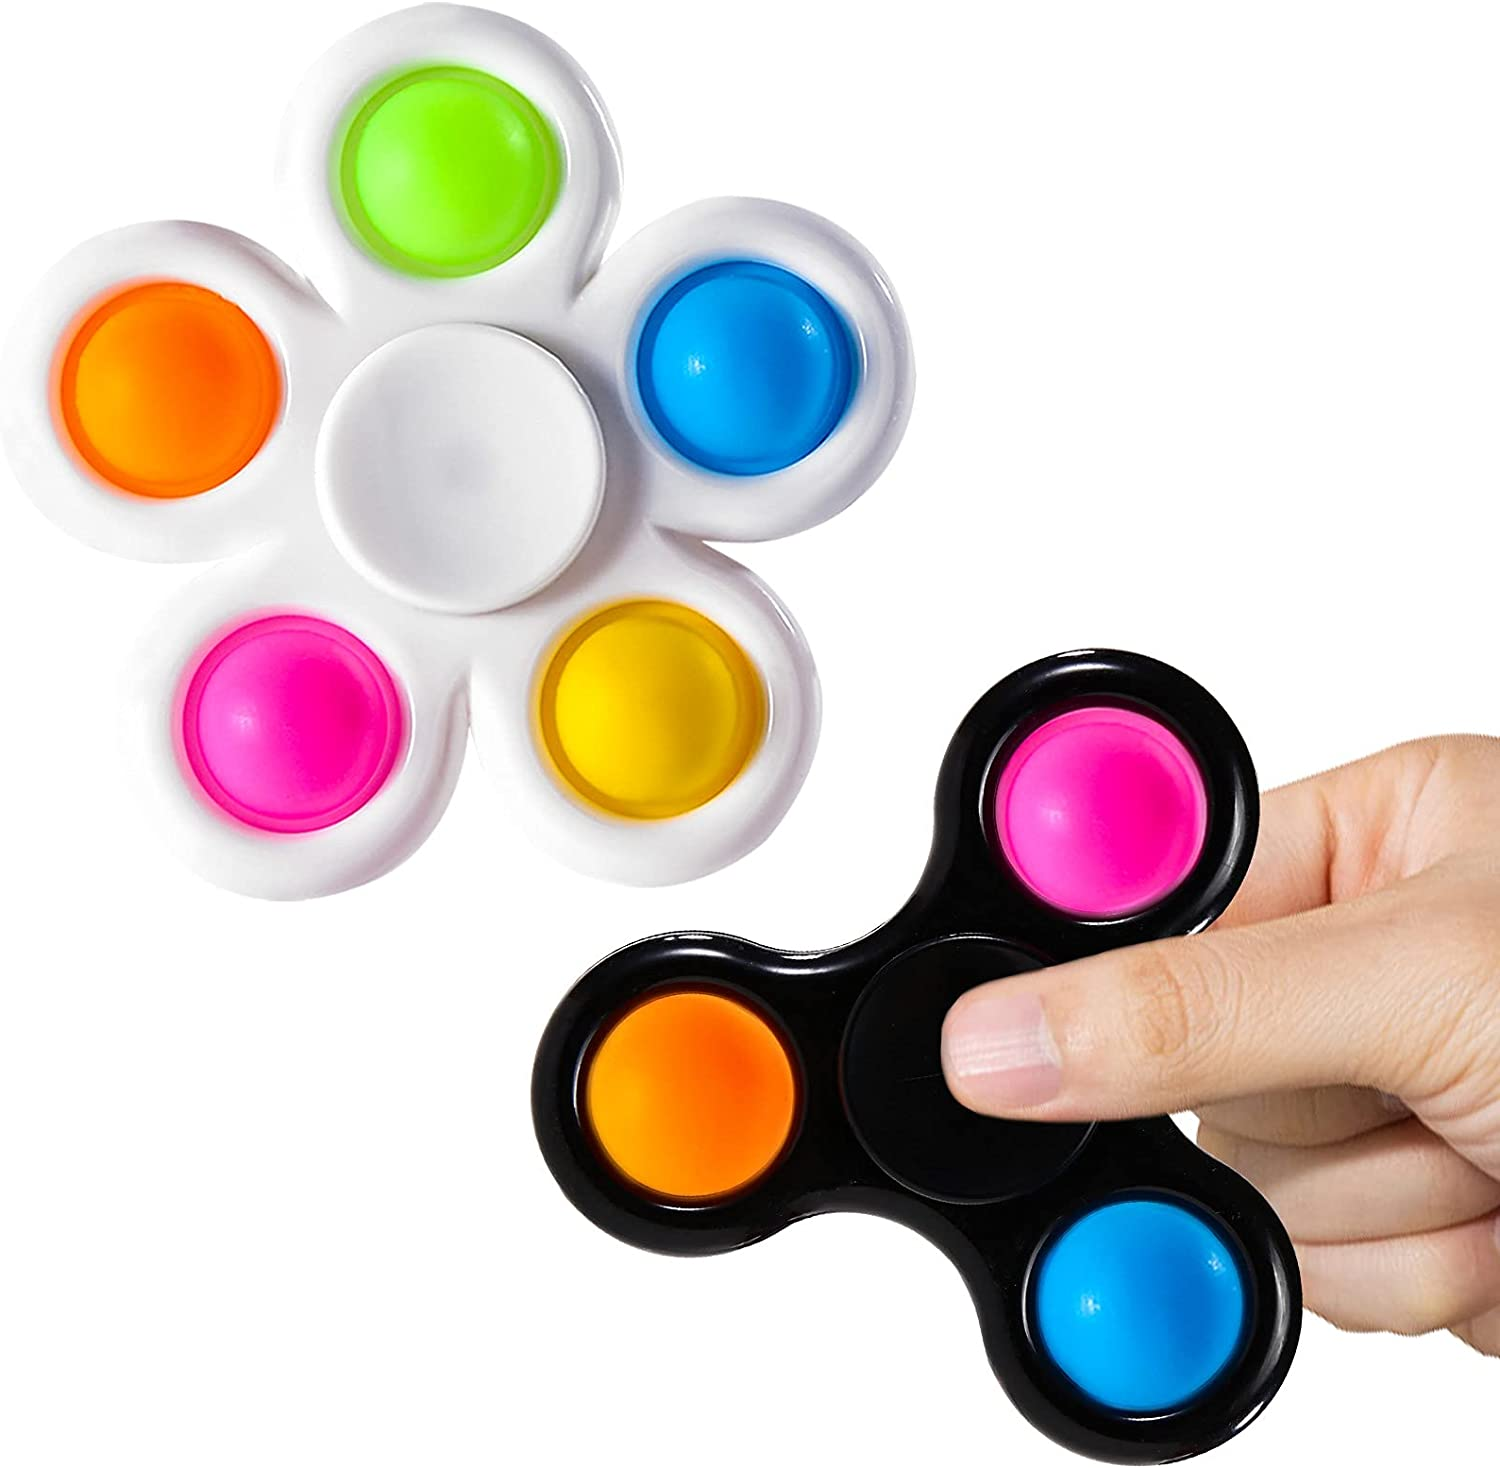 SCIONE Pop Fidget Spinners 2 Toy Pack Packs New shipfree York Mall Poopp